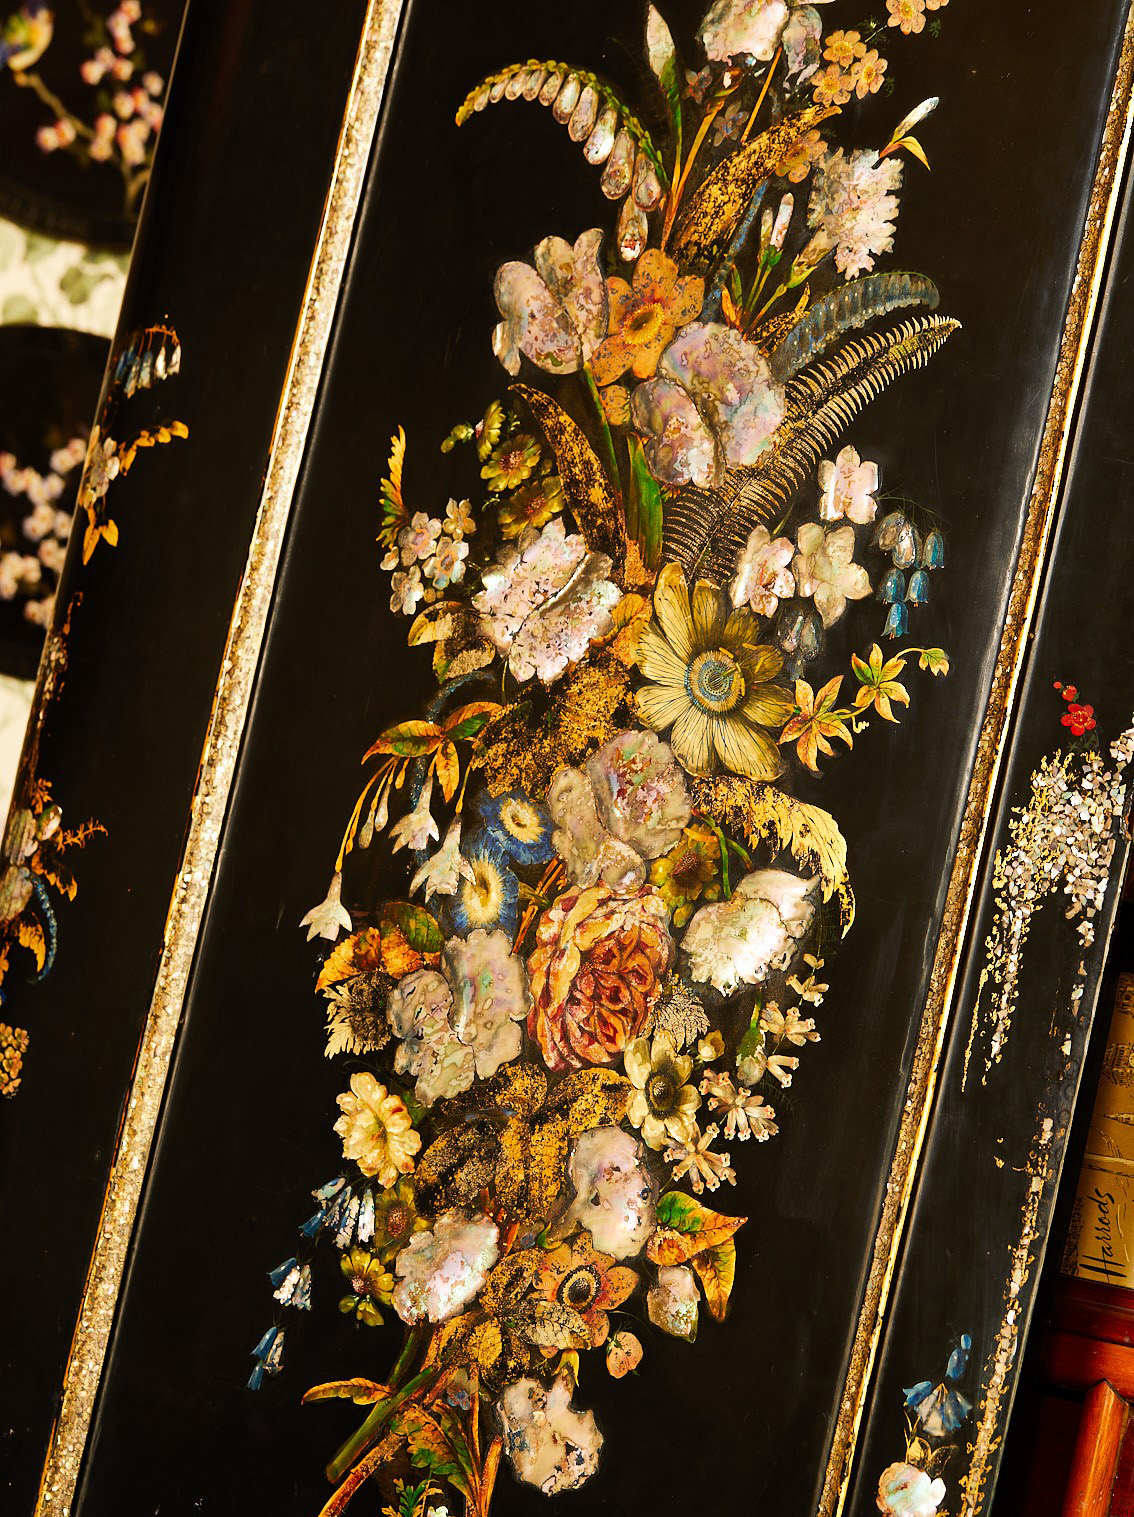 Close up showing painted flowers on a black papier mache background